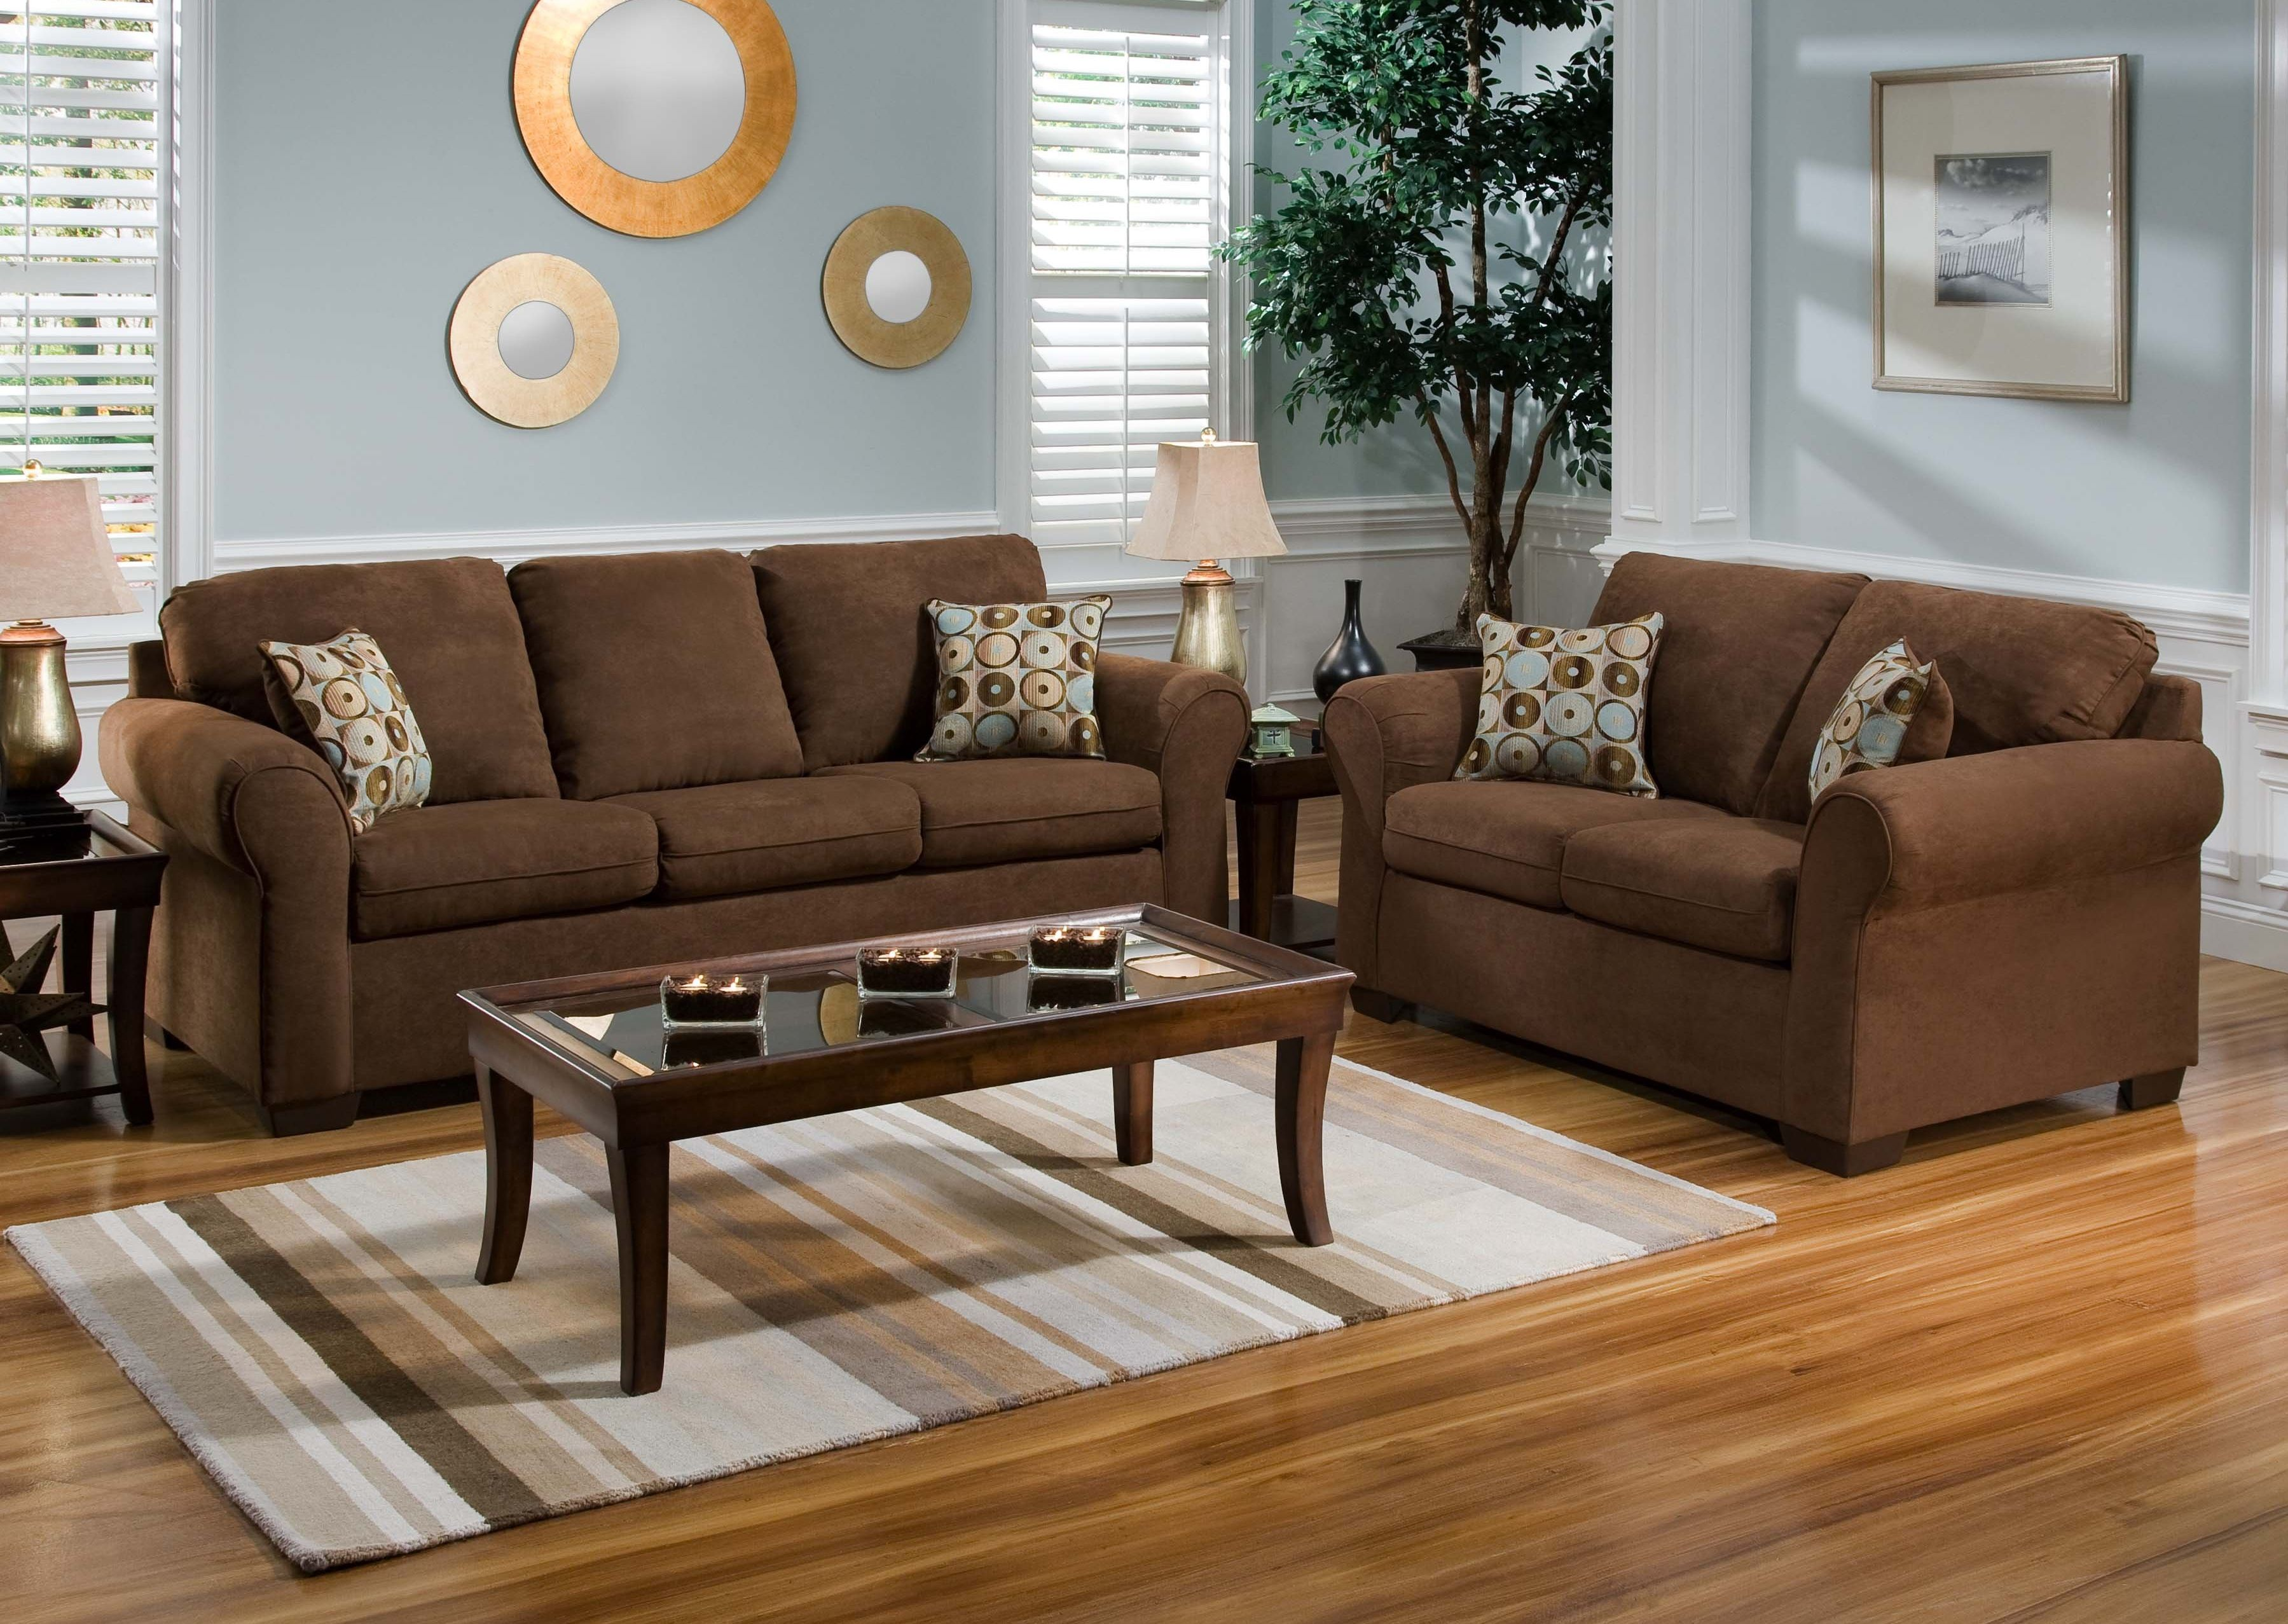 Wood Flooring Color To Complement Brown Leather And Oak